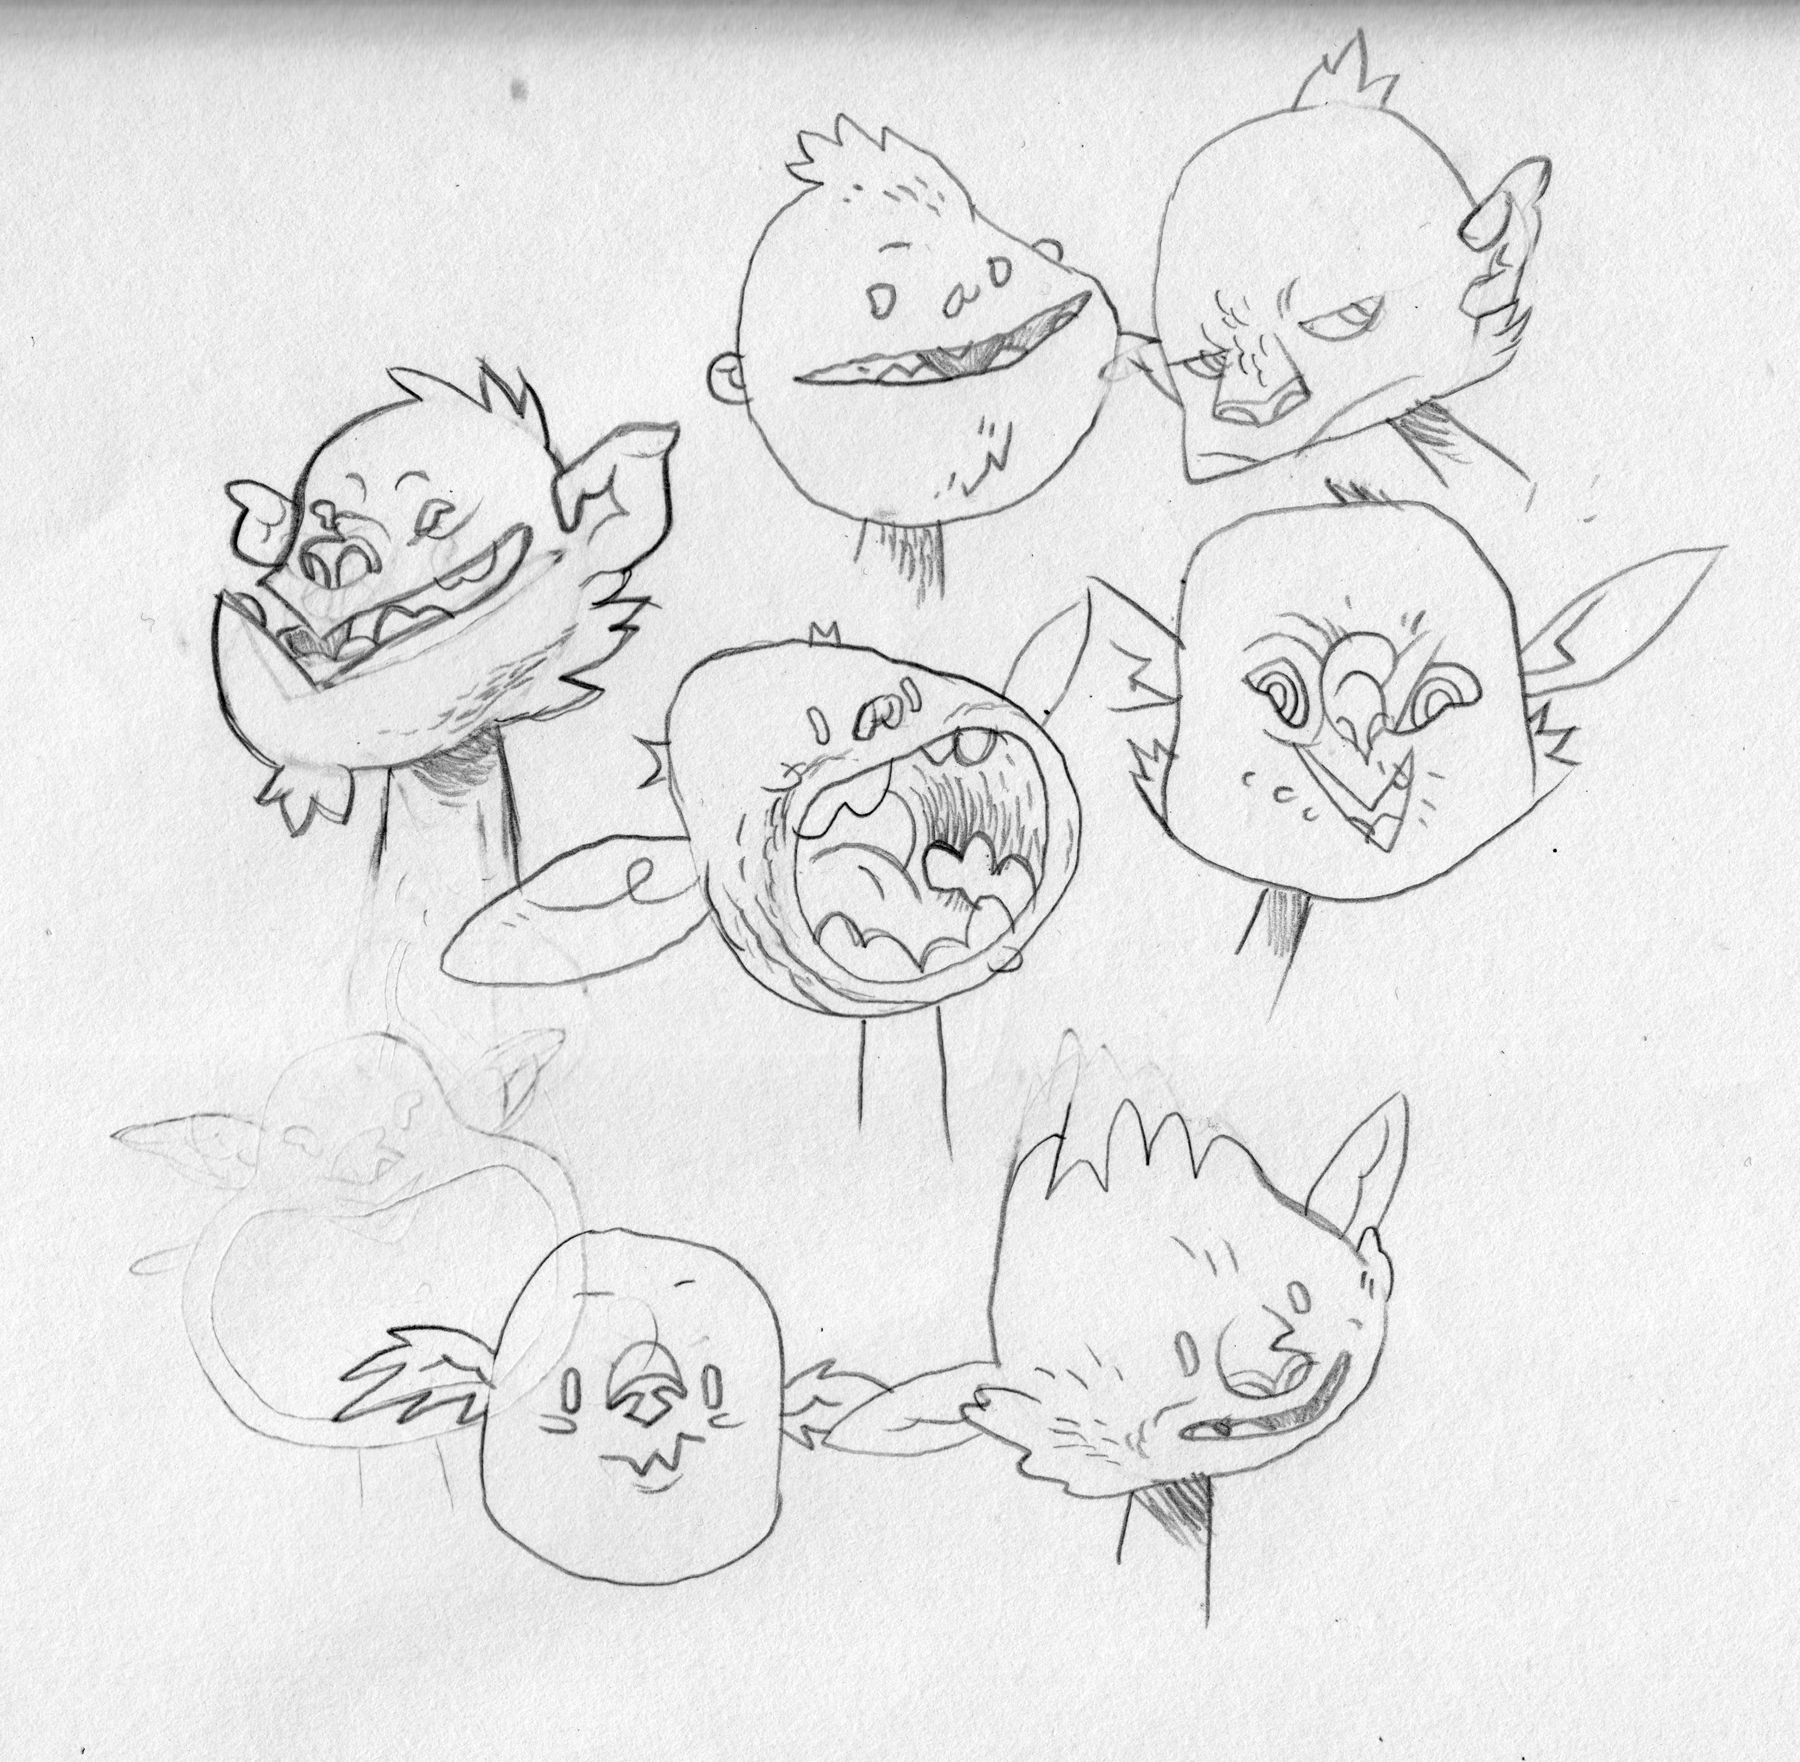 A range of goblin expressions.